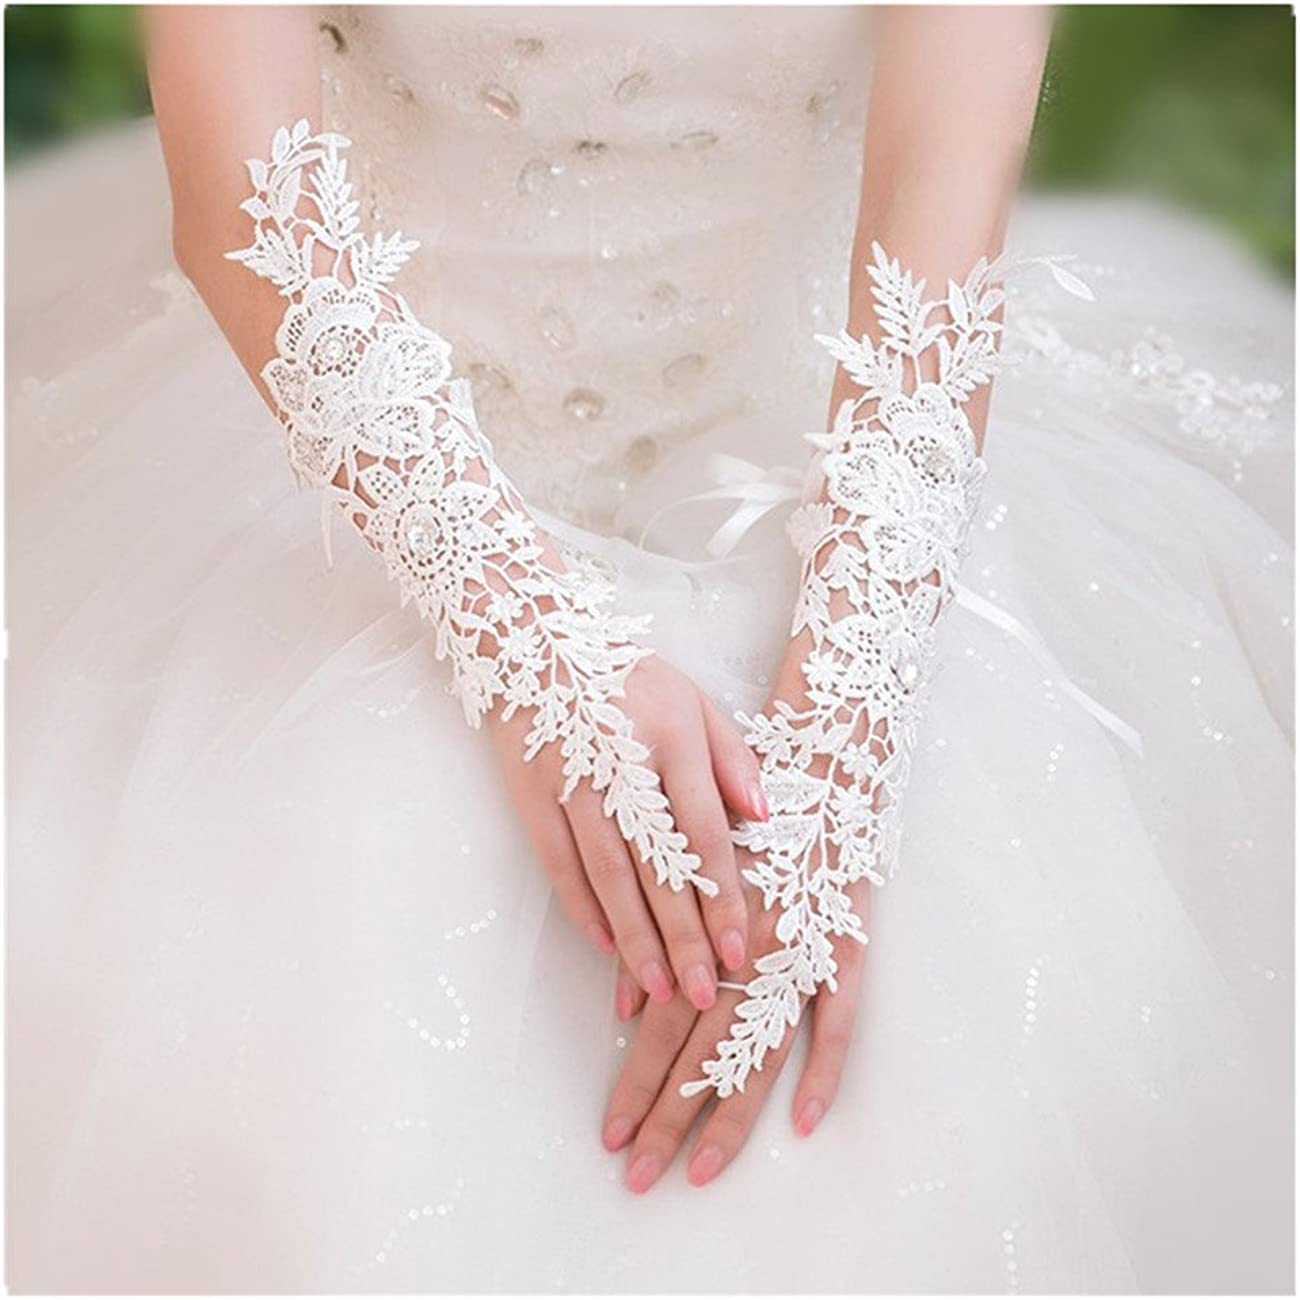 Lianshi Long Fingerless Gloves Lace Pierced Bridal High-end Sexy Gloves for Wedding Party and Women and Girls(white)